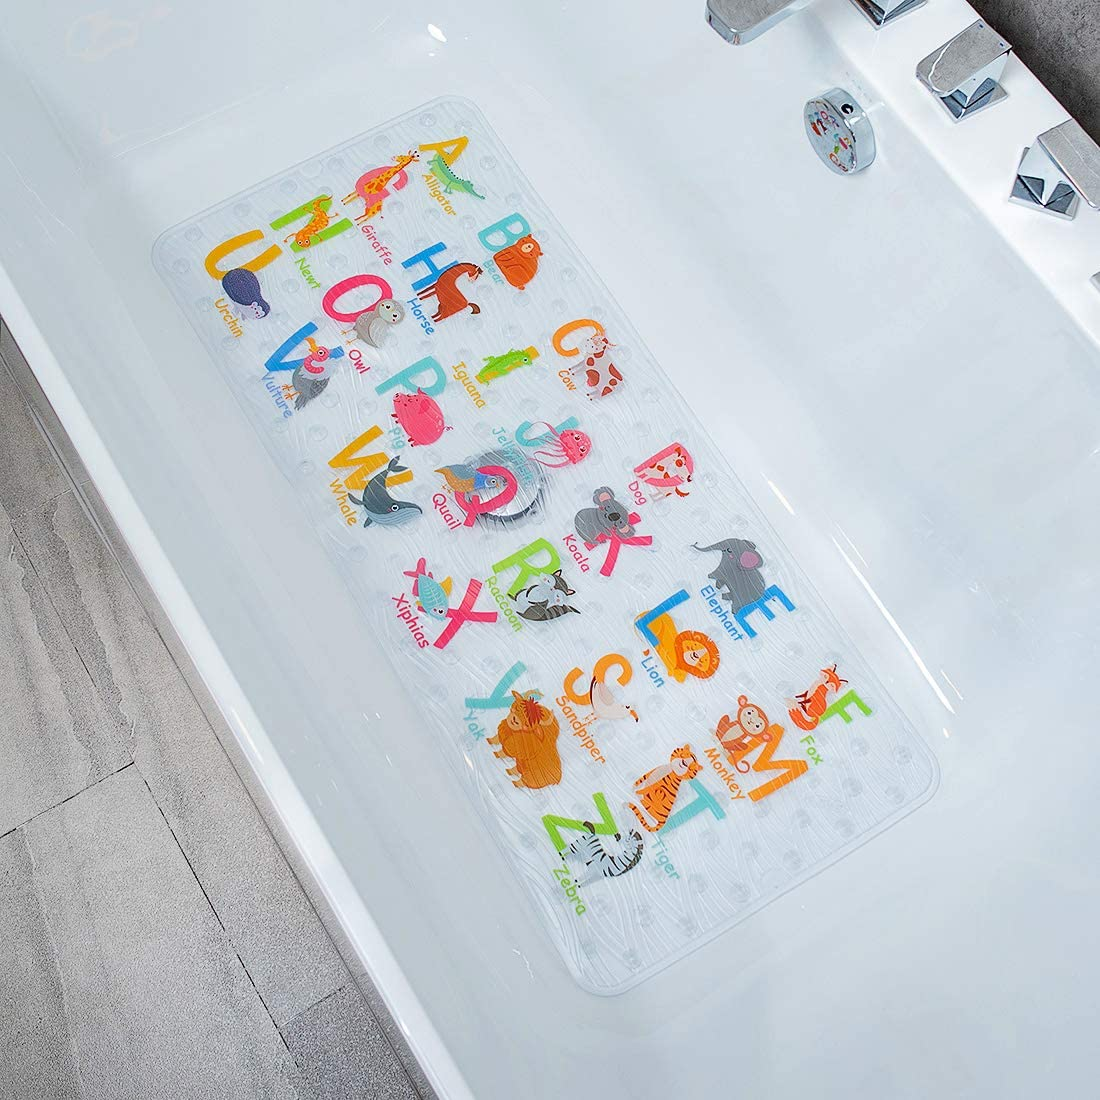 BEEHOMEE Bath Mats for Tub Kids - Large Cartoon Non-Slip Bathroom Bathtub Kid Mat for Baby Toddler Anti-Slip Shower Mats for Floor 35x16,Machine Washable XL Size Bathroom Mats (Alphabet)